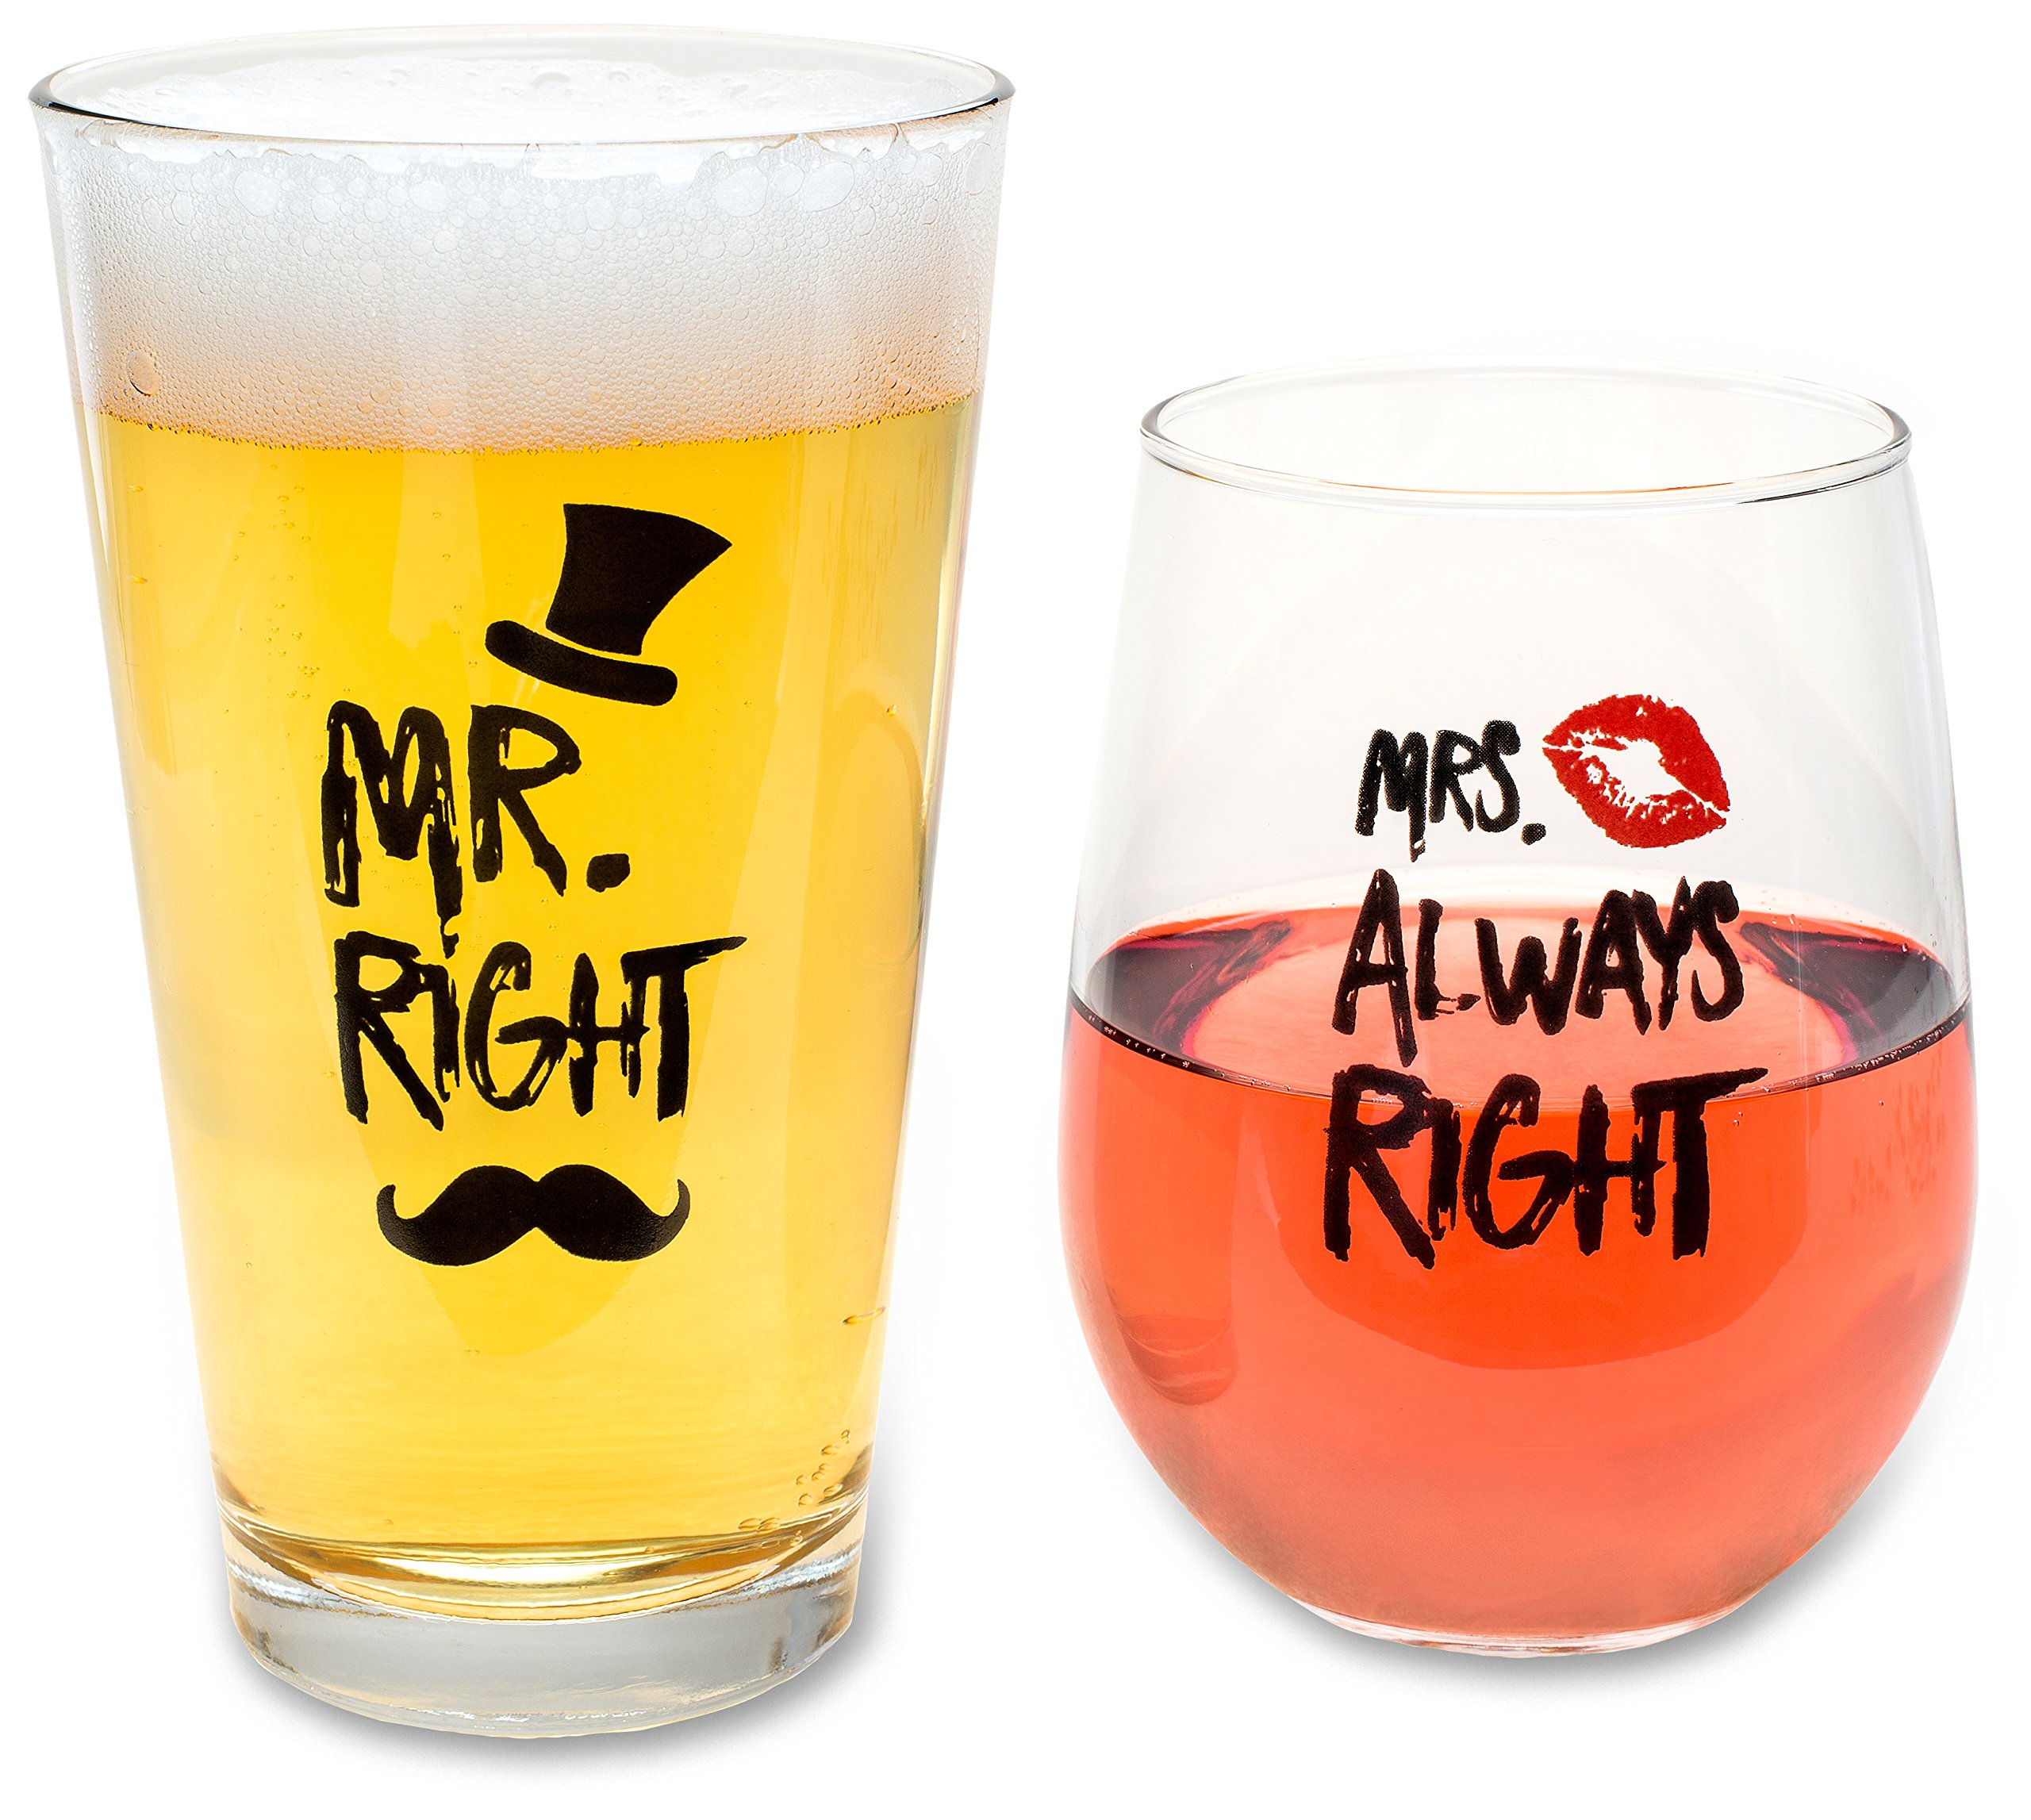 Funny Wedding Gifts - Mr. Right and Mrs. Always Right Novelty Wine Glass and Beer Glass Combo - Engagement Gift for Couples by The Plympton Company